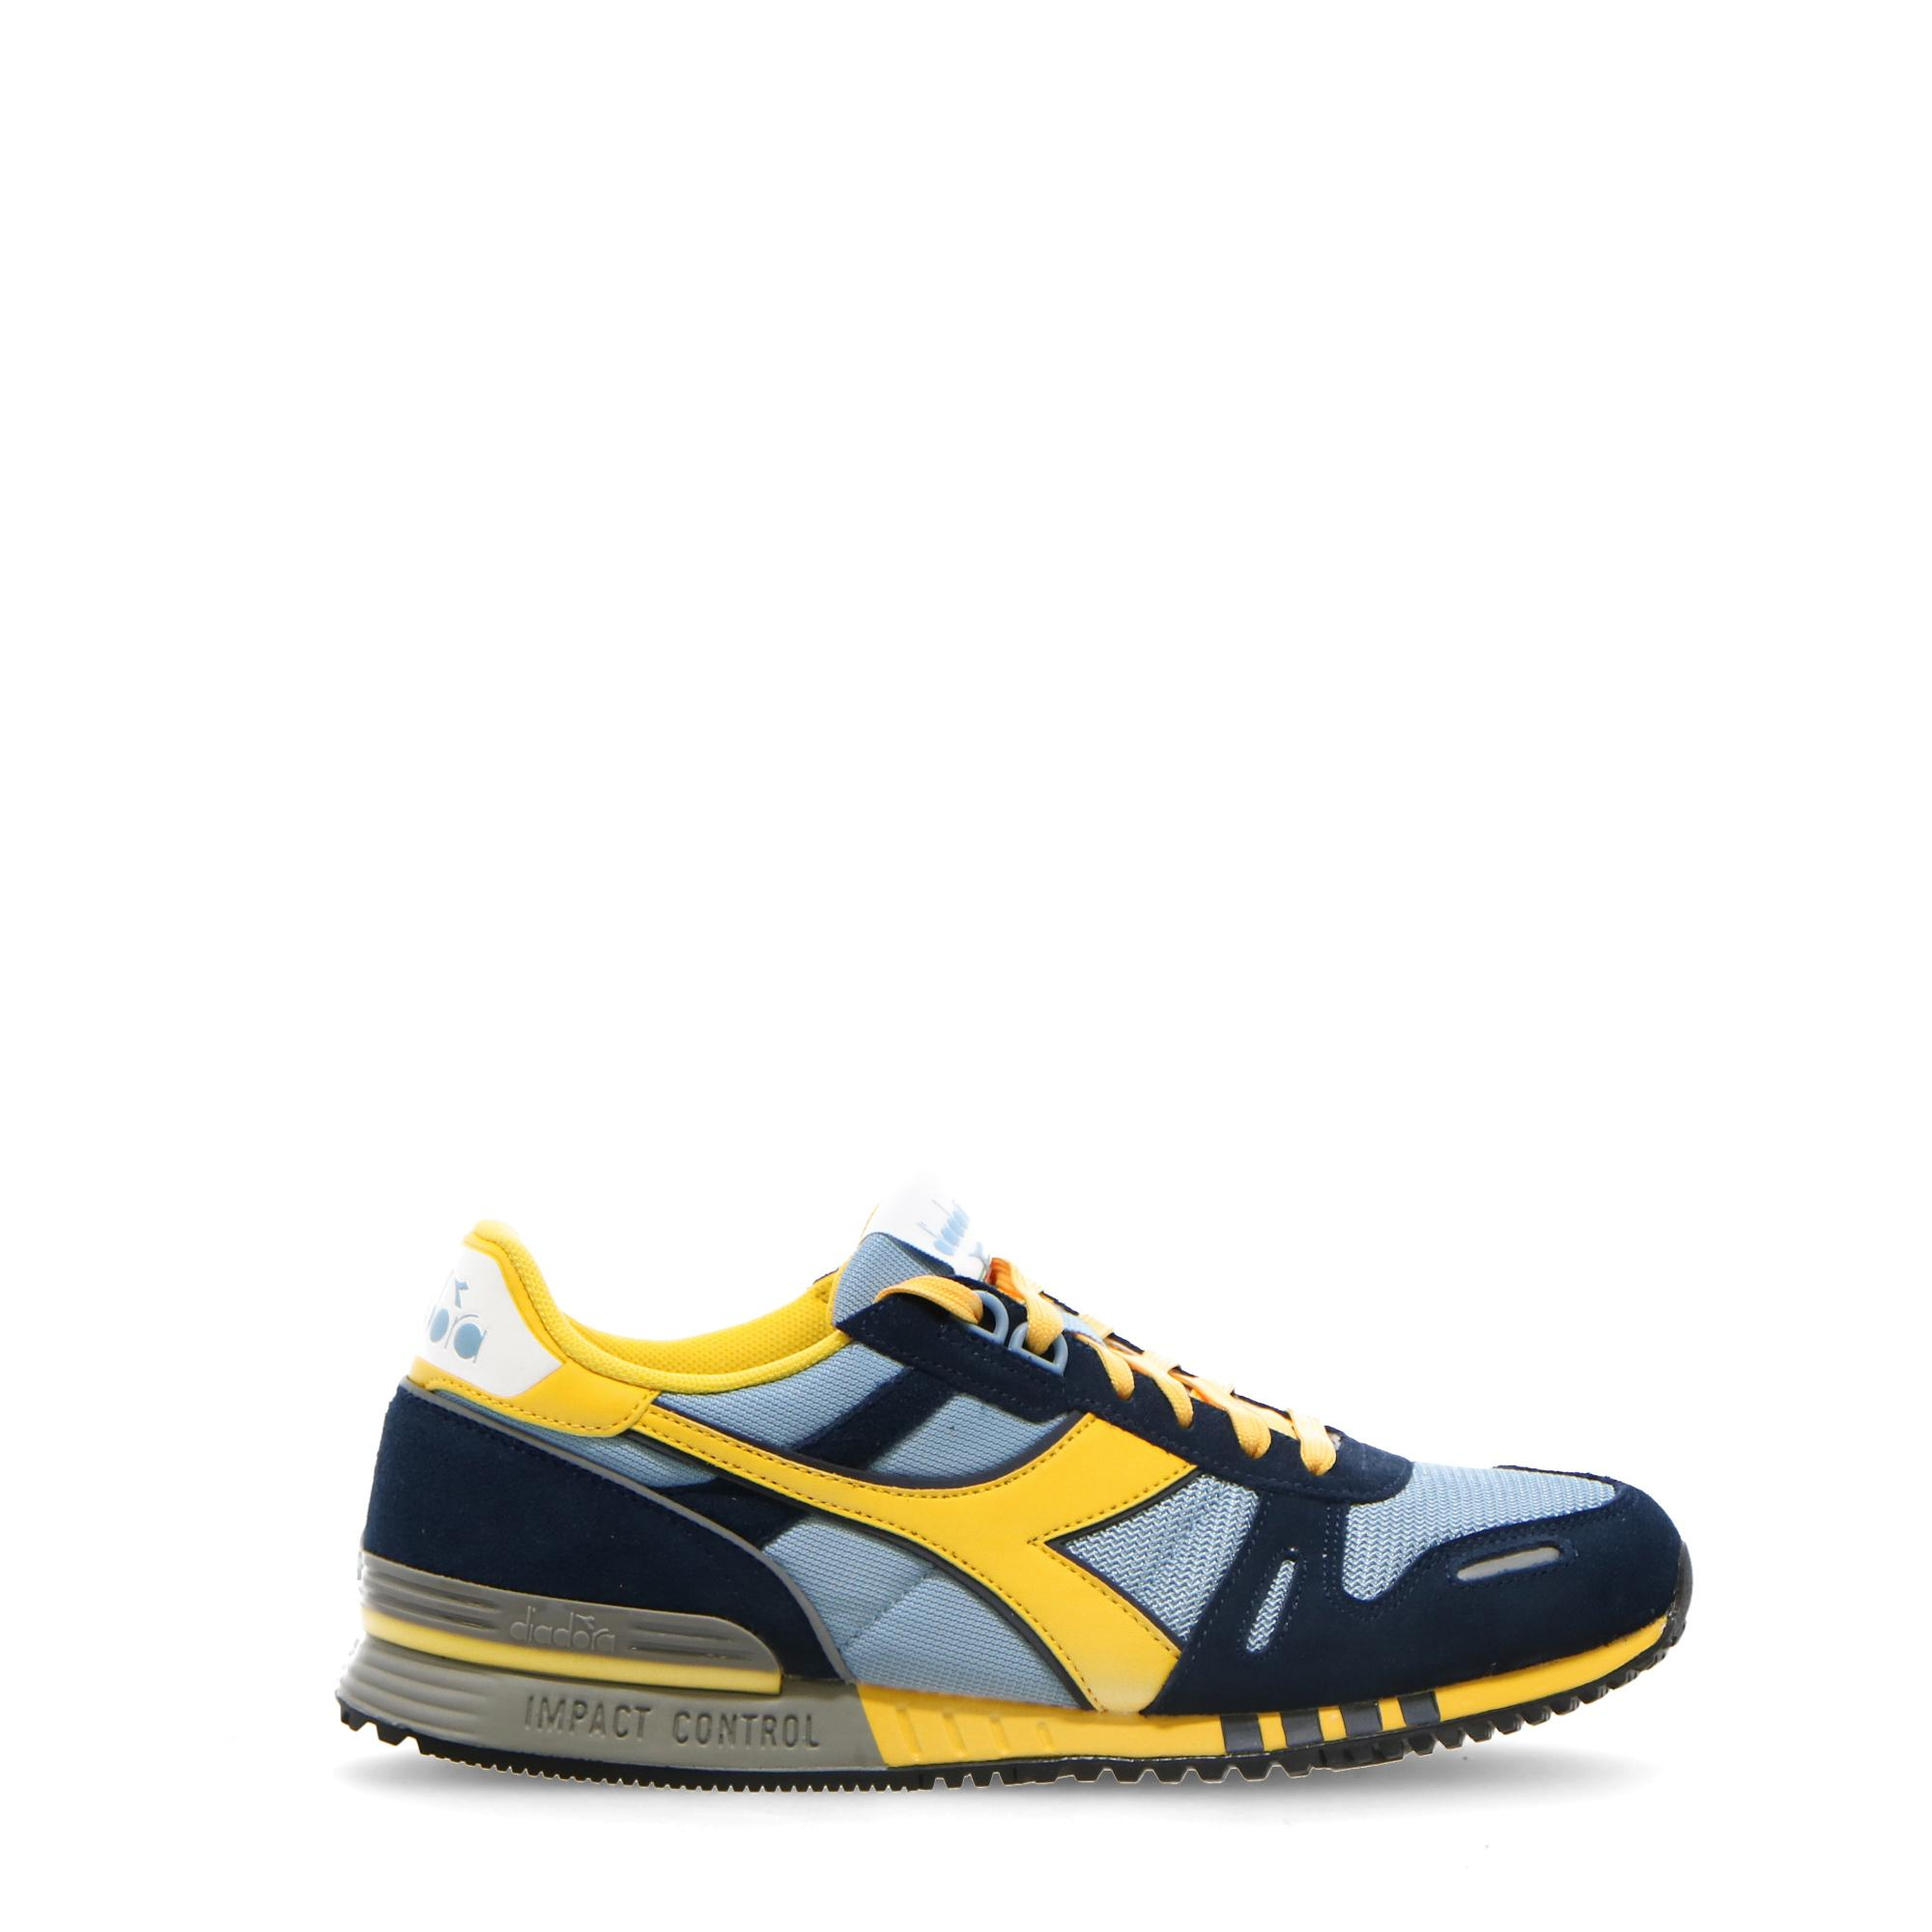 Diadora Titan Sky blue grey spectra yellow